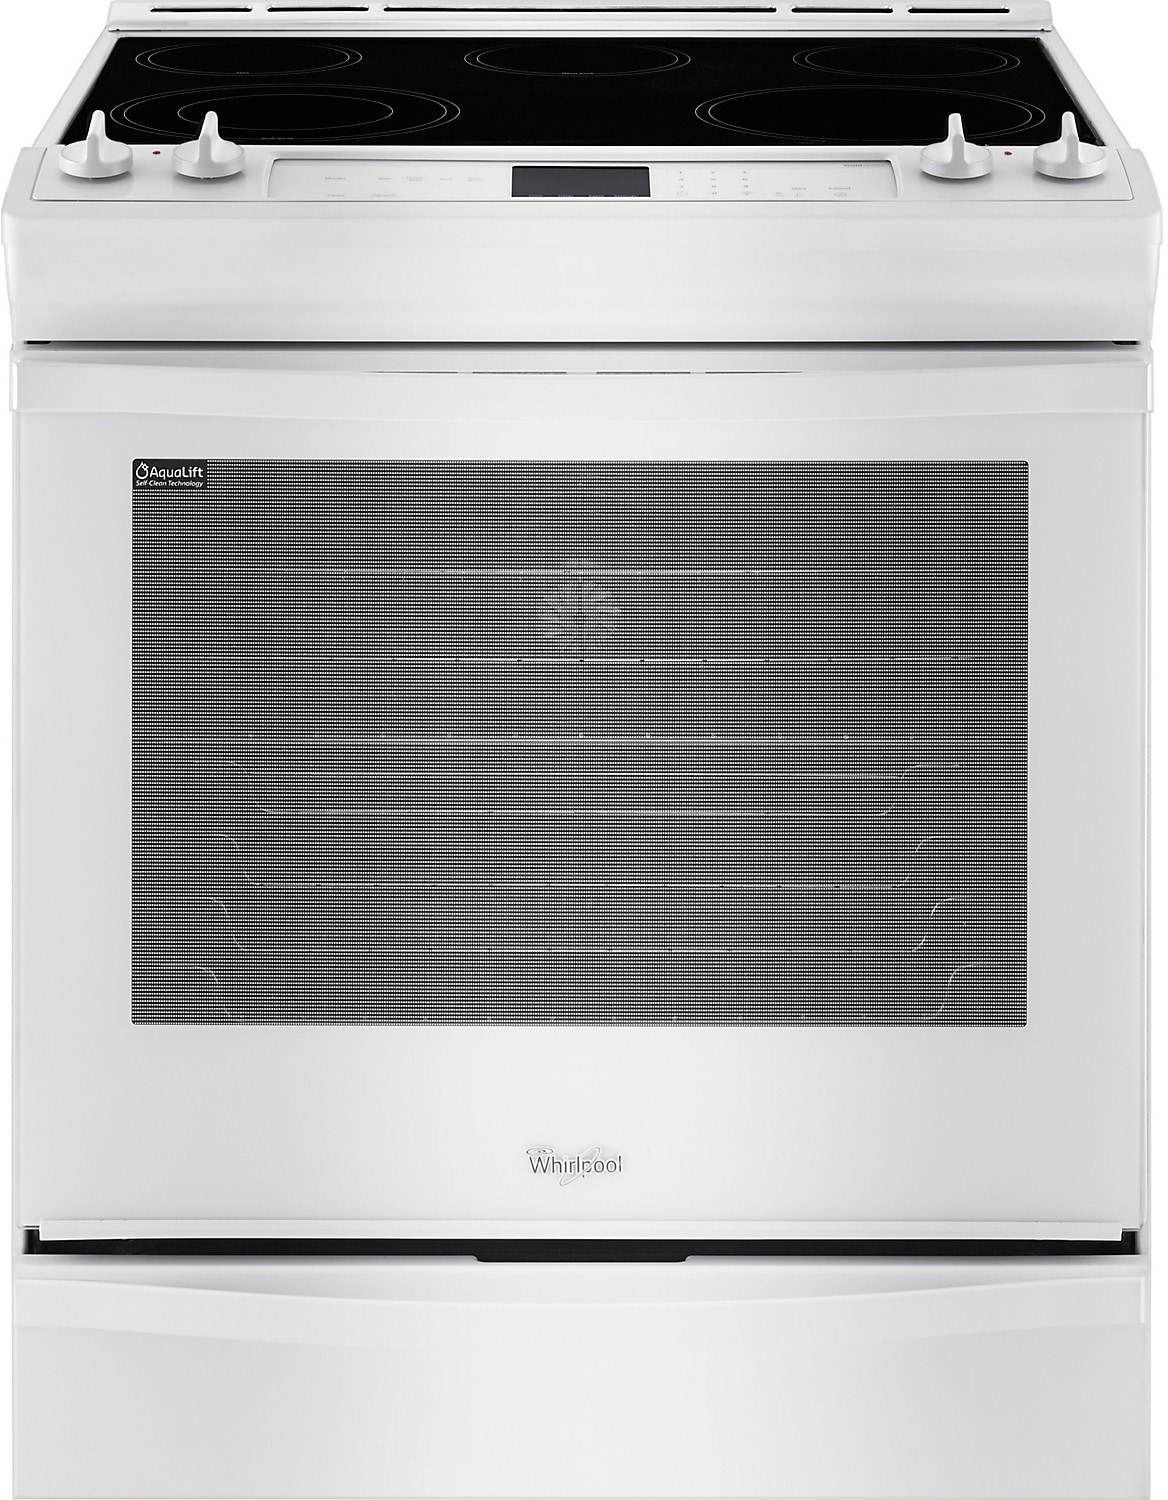 Cooking Products - Whirlpool 6.2 Cu. Ft. Electric Range with TimeSavor™ Convection - White